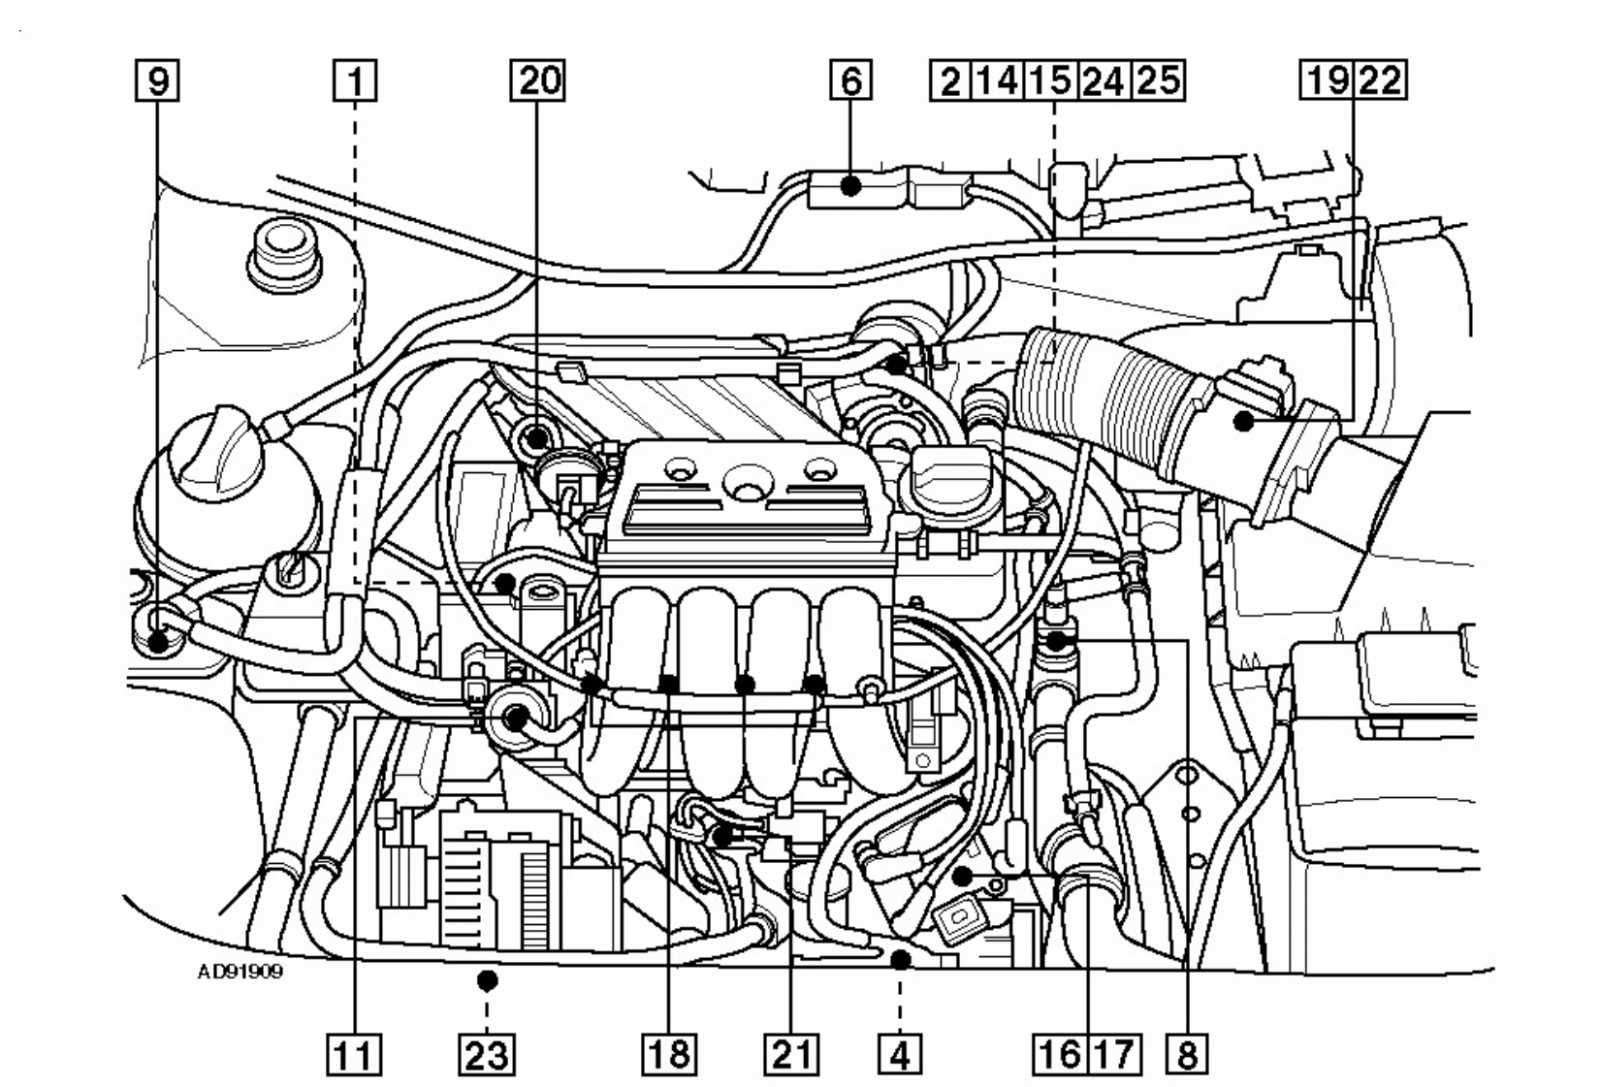 6 Vw Jetta Tdi Engine Diagram - Wiring Diagram Rows engine diagram 2001  jetta gti in 2020 | Vw up, Diagram, Vw jettaPinterest